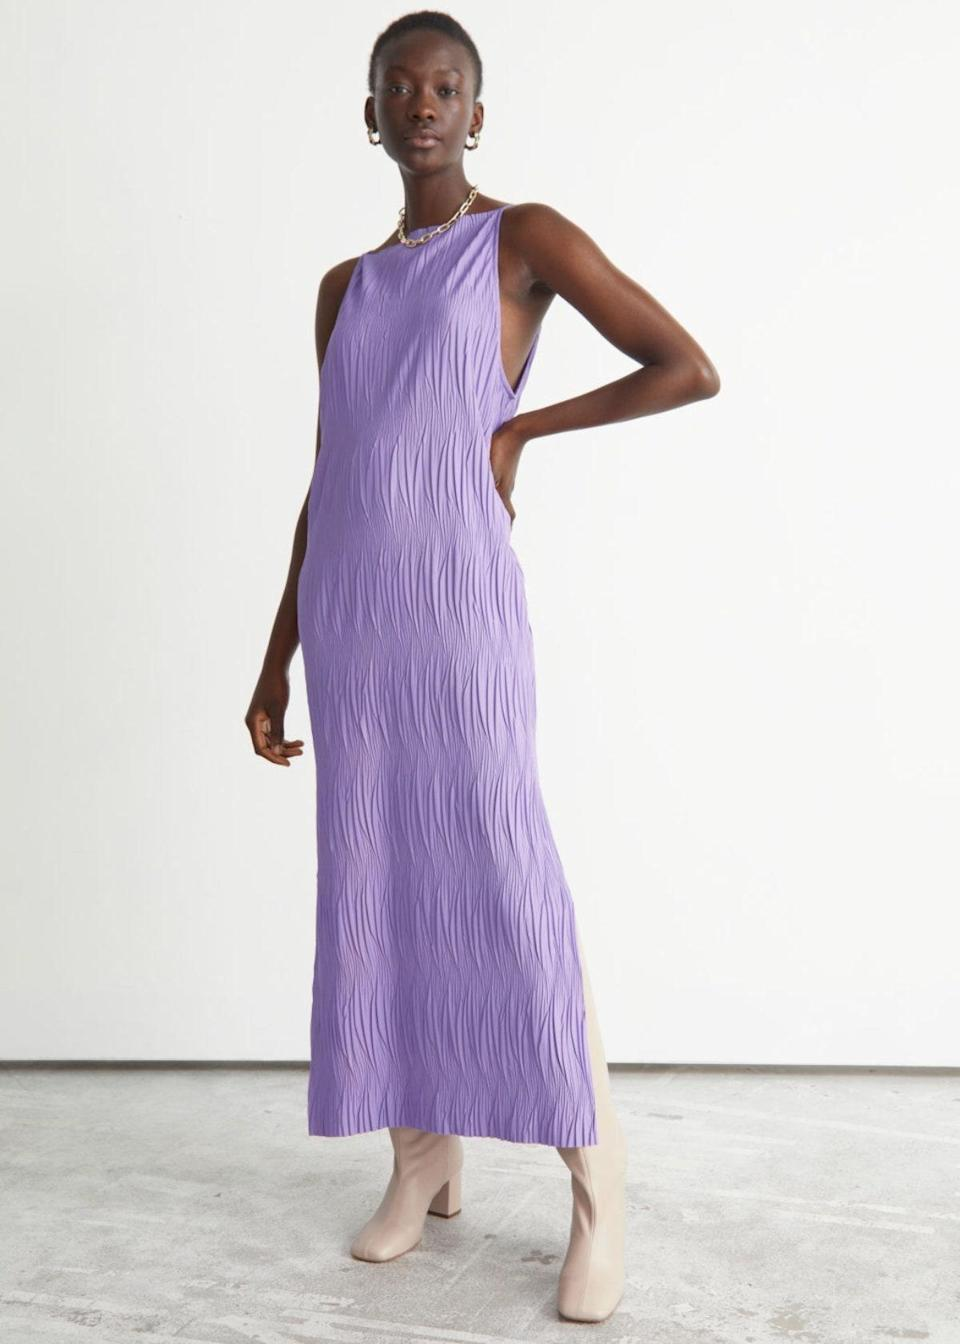 """Whether the wedding backdrop is an oak-filled garden or Gatsby-esque ballroom, this lilac midi has endless styling potential. Pair with your <a href=""""https://www.glamour.com/gallery/comfortable-wedding-shoes?mbid=synd_yahoo_rss"""" rel=""""nofollow noopener"""" target=""""_blank"""" data-ylk=""""slk:heels of choice"""" class=""""link rapid-noclick-resp"""">heels of choice</a> for the dinner portion, then swap for festive flats after hours. $69, & Other Stories. <a href=""""https://www.stories.com/en_usd/clothing/dresses/maxi-dresses/product.pliss%C3%A9-pleated-maxi-dress-purple.0987171001.html"""" rel=""""nofollow noopener"""" target=""""_blank"""" data-ylk=""""slk:Get it now!"""" class=""""link rapid-noclick-resp"""">Get it now!</a>"""